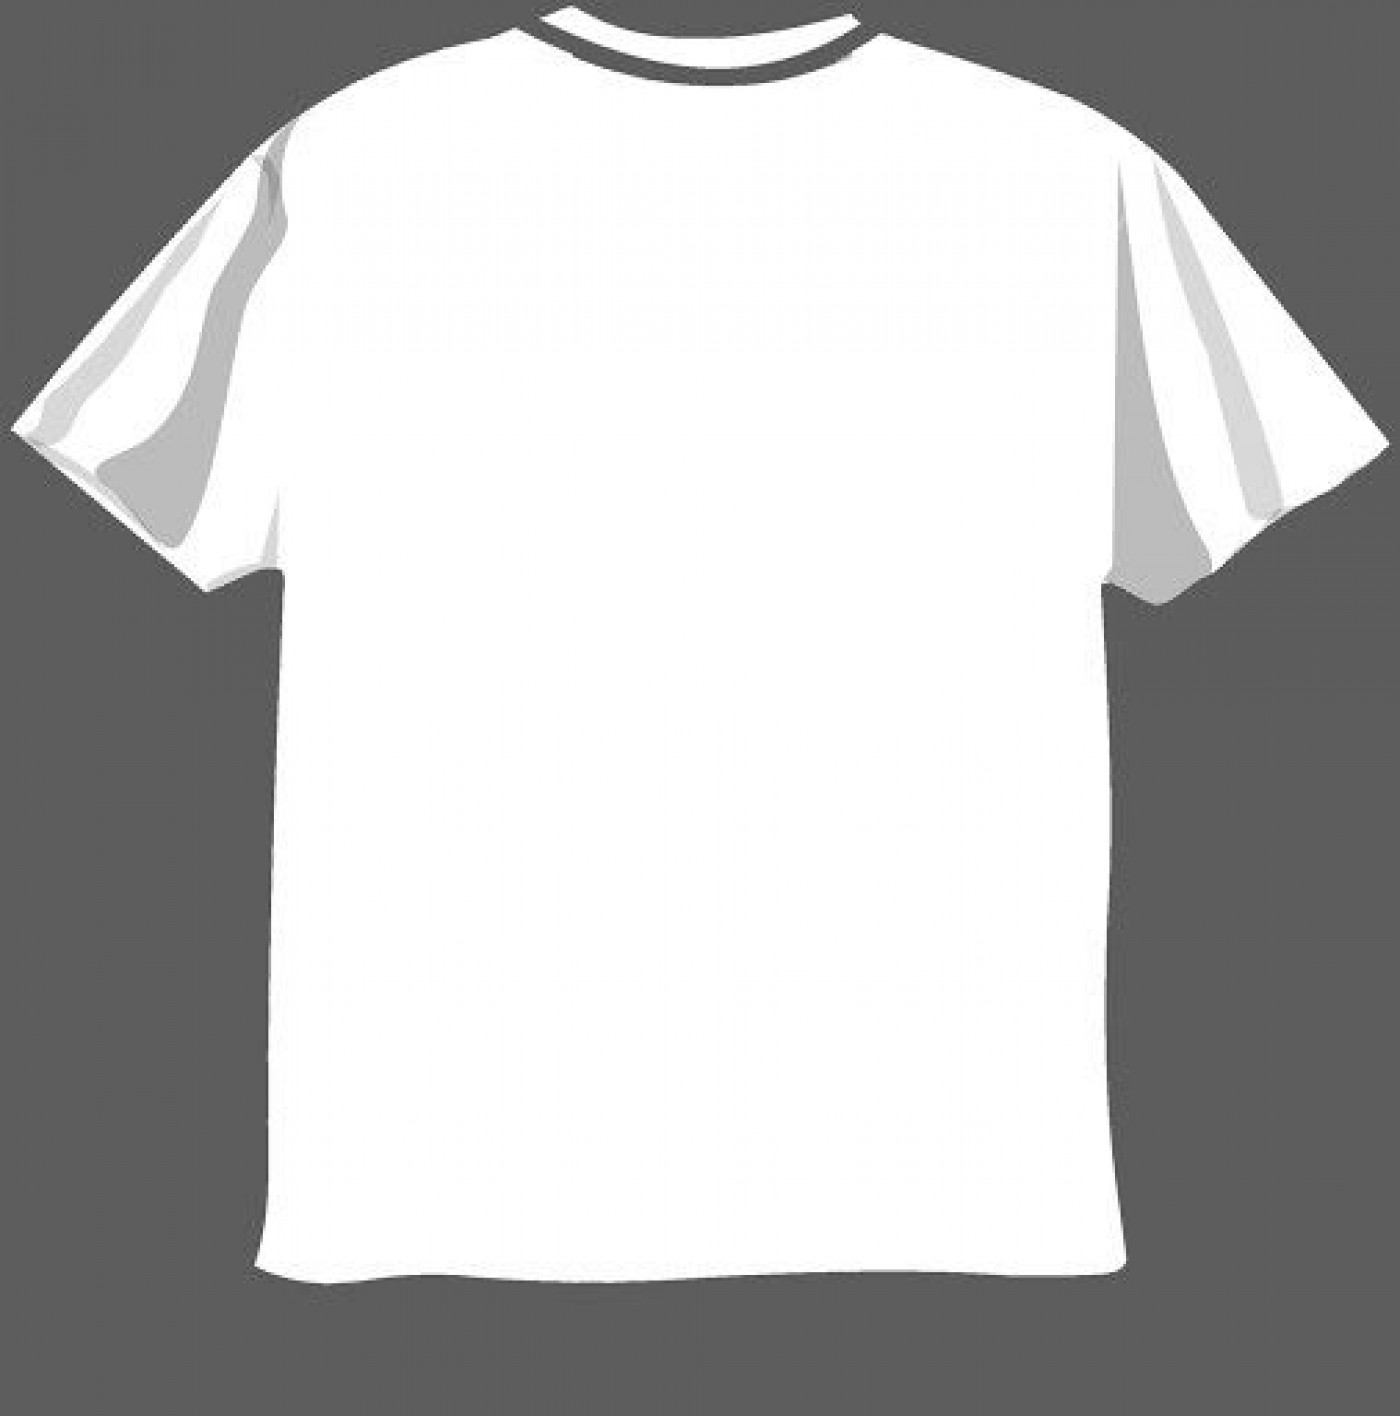 008 Outstanding T Shirt Design Template Psd High Def  Blank T-shirt Free Download Layout Photoshop1400